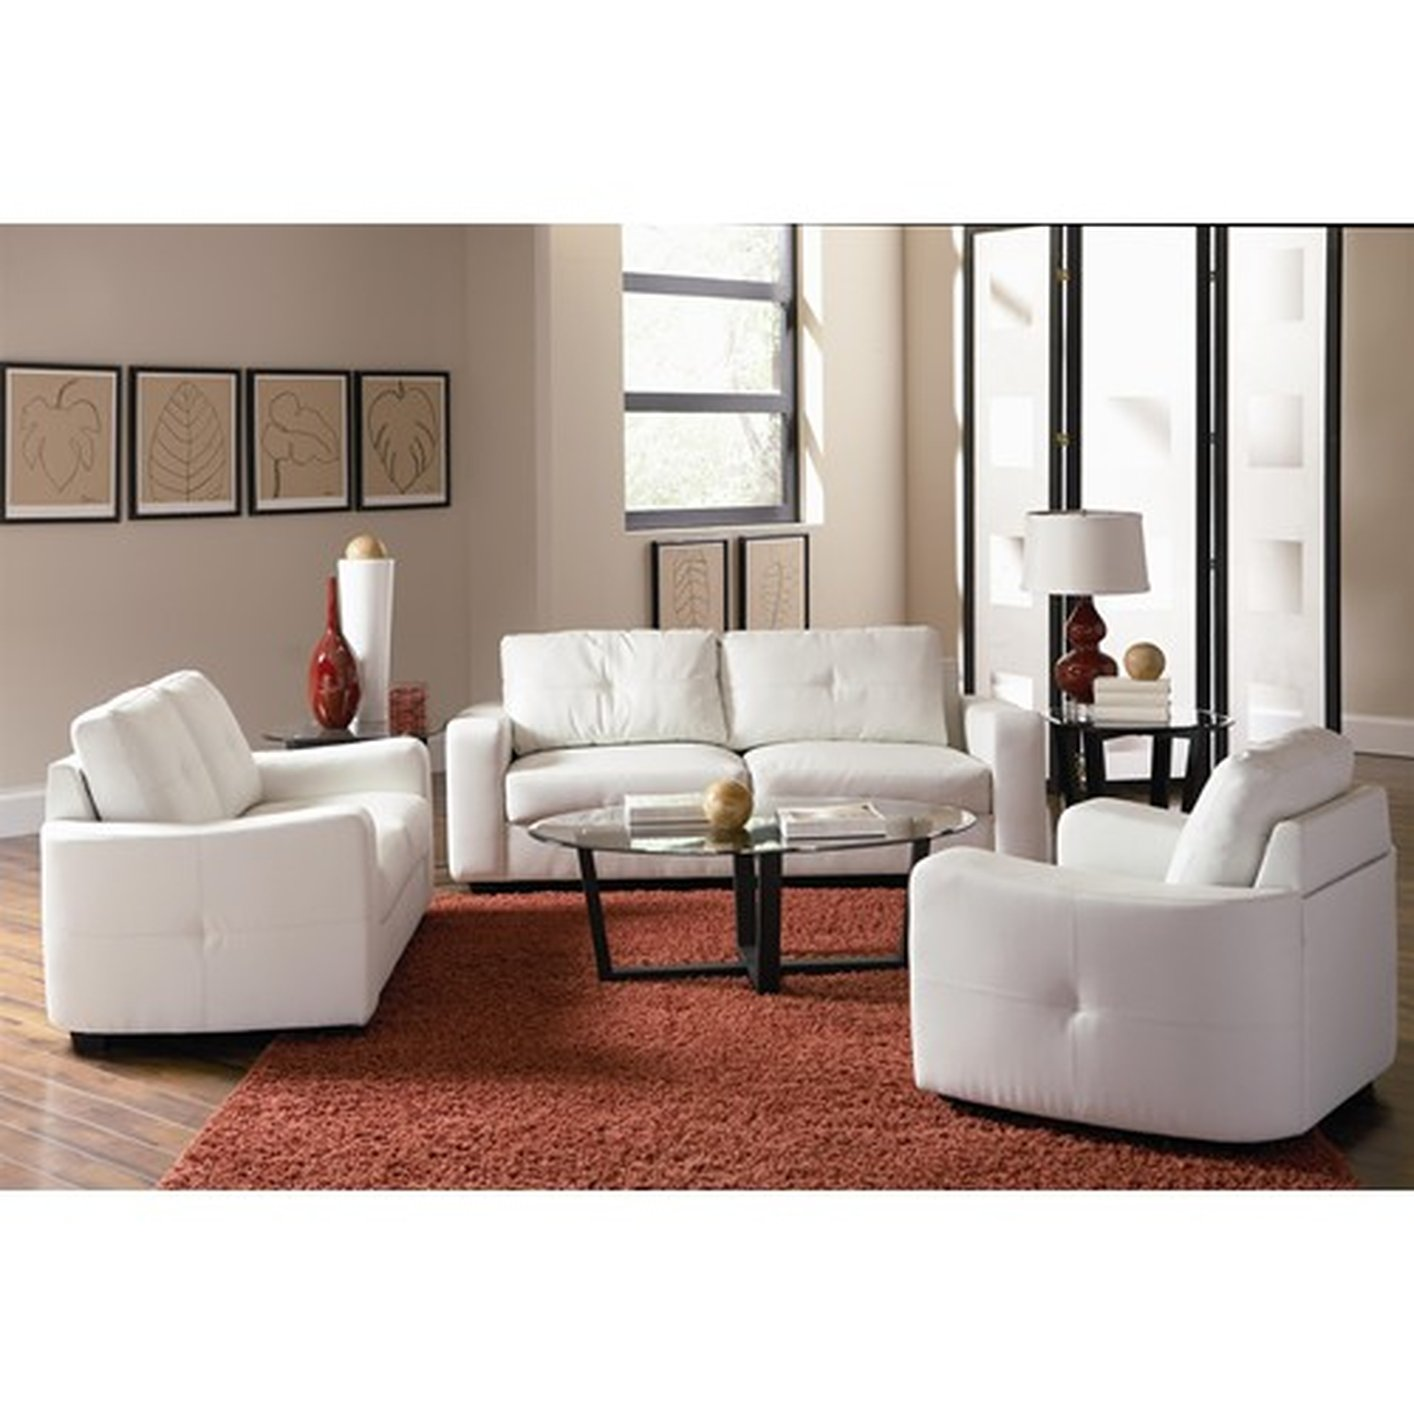 Jasmine White Leather Loveseat Steal A Sofa Furniture Outlet Los Angeles Ca